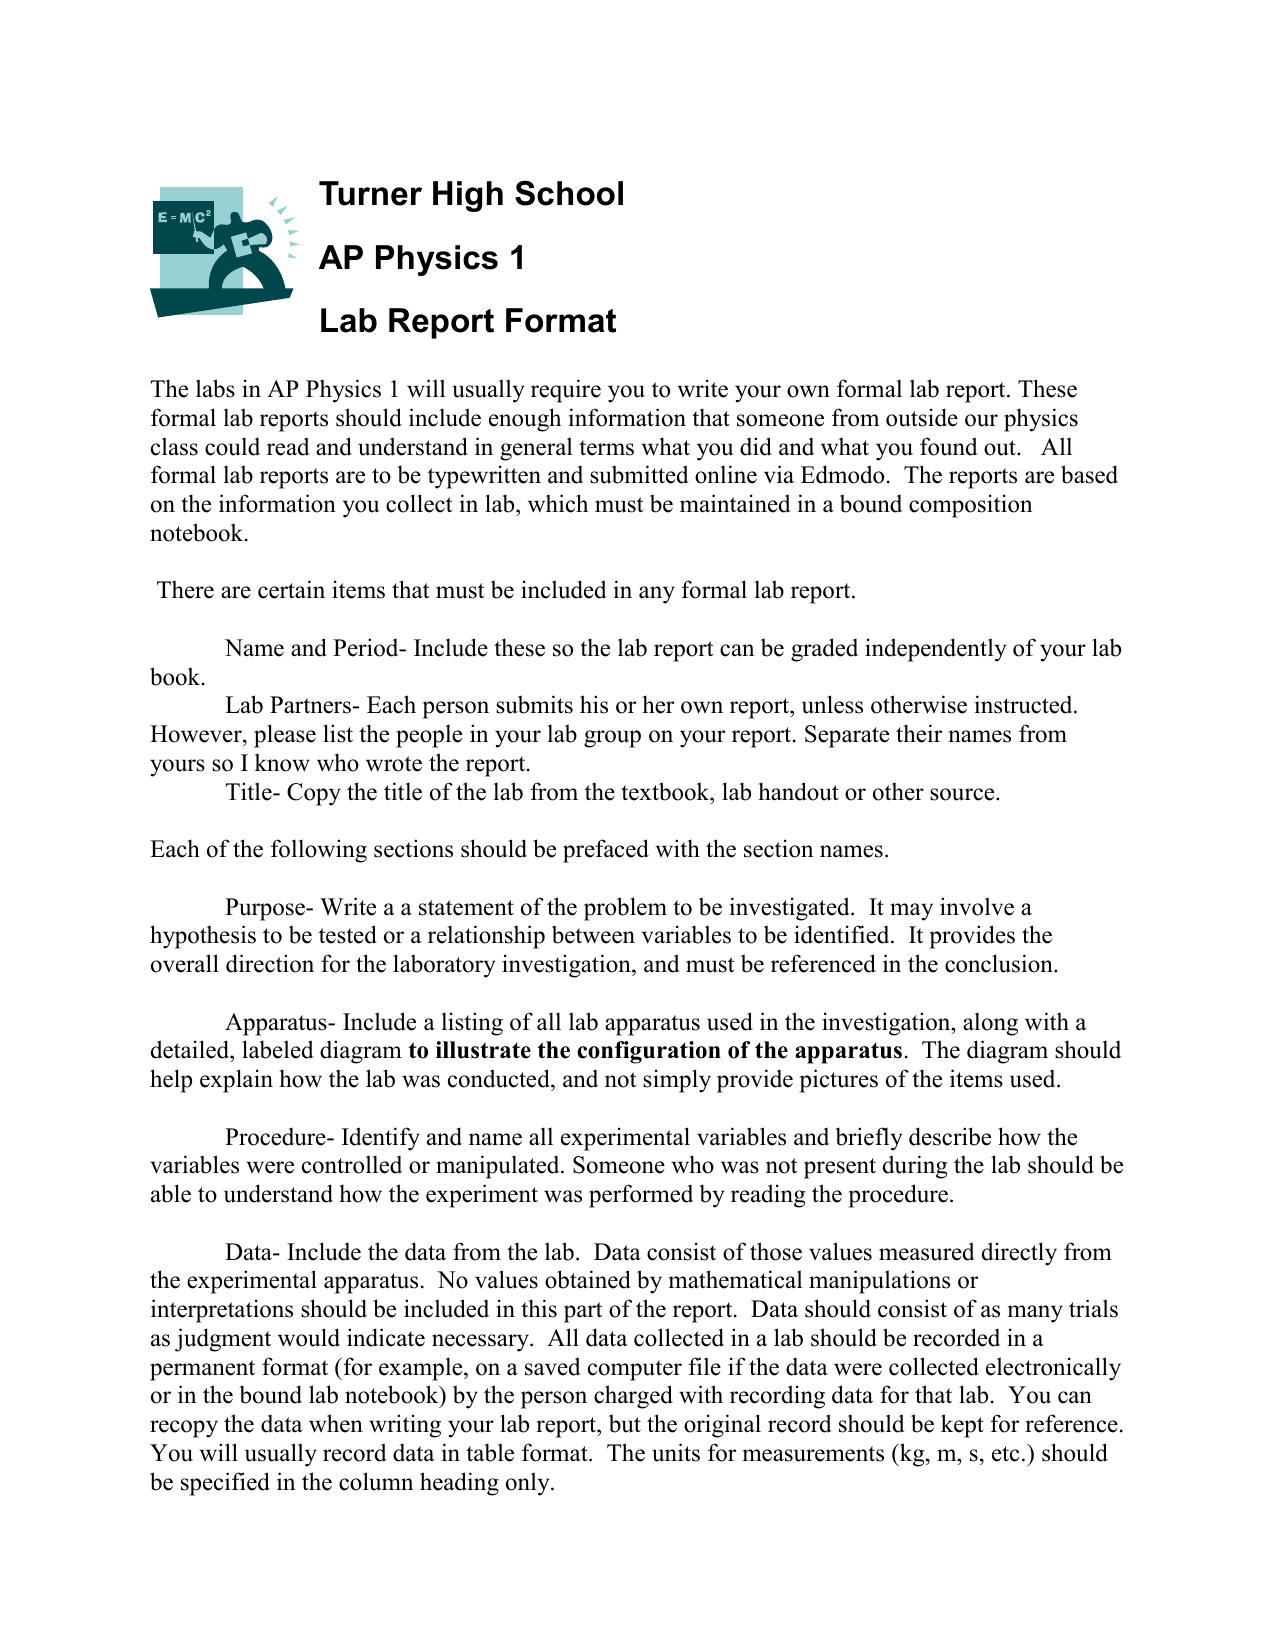 How to Write a Physics Lab Report How to Write a Physics Lab Report new images